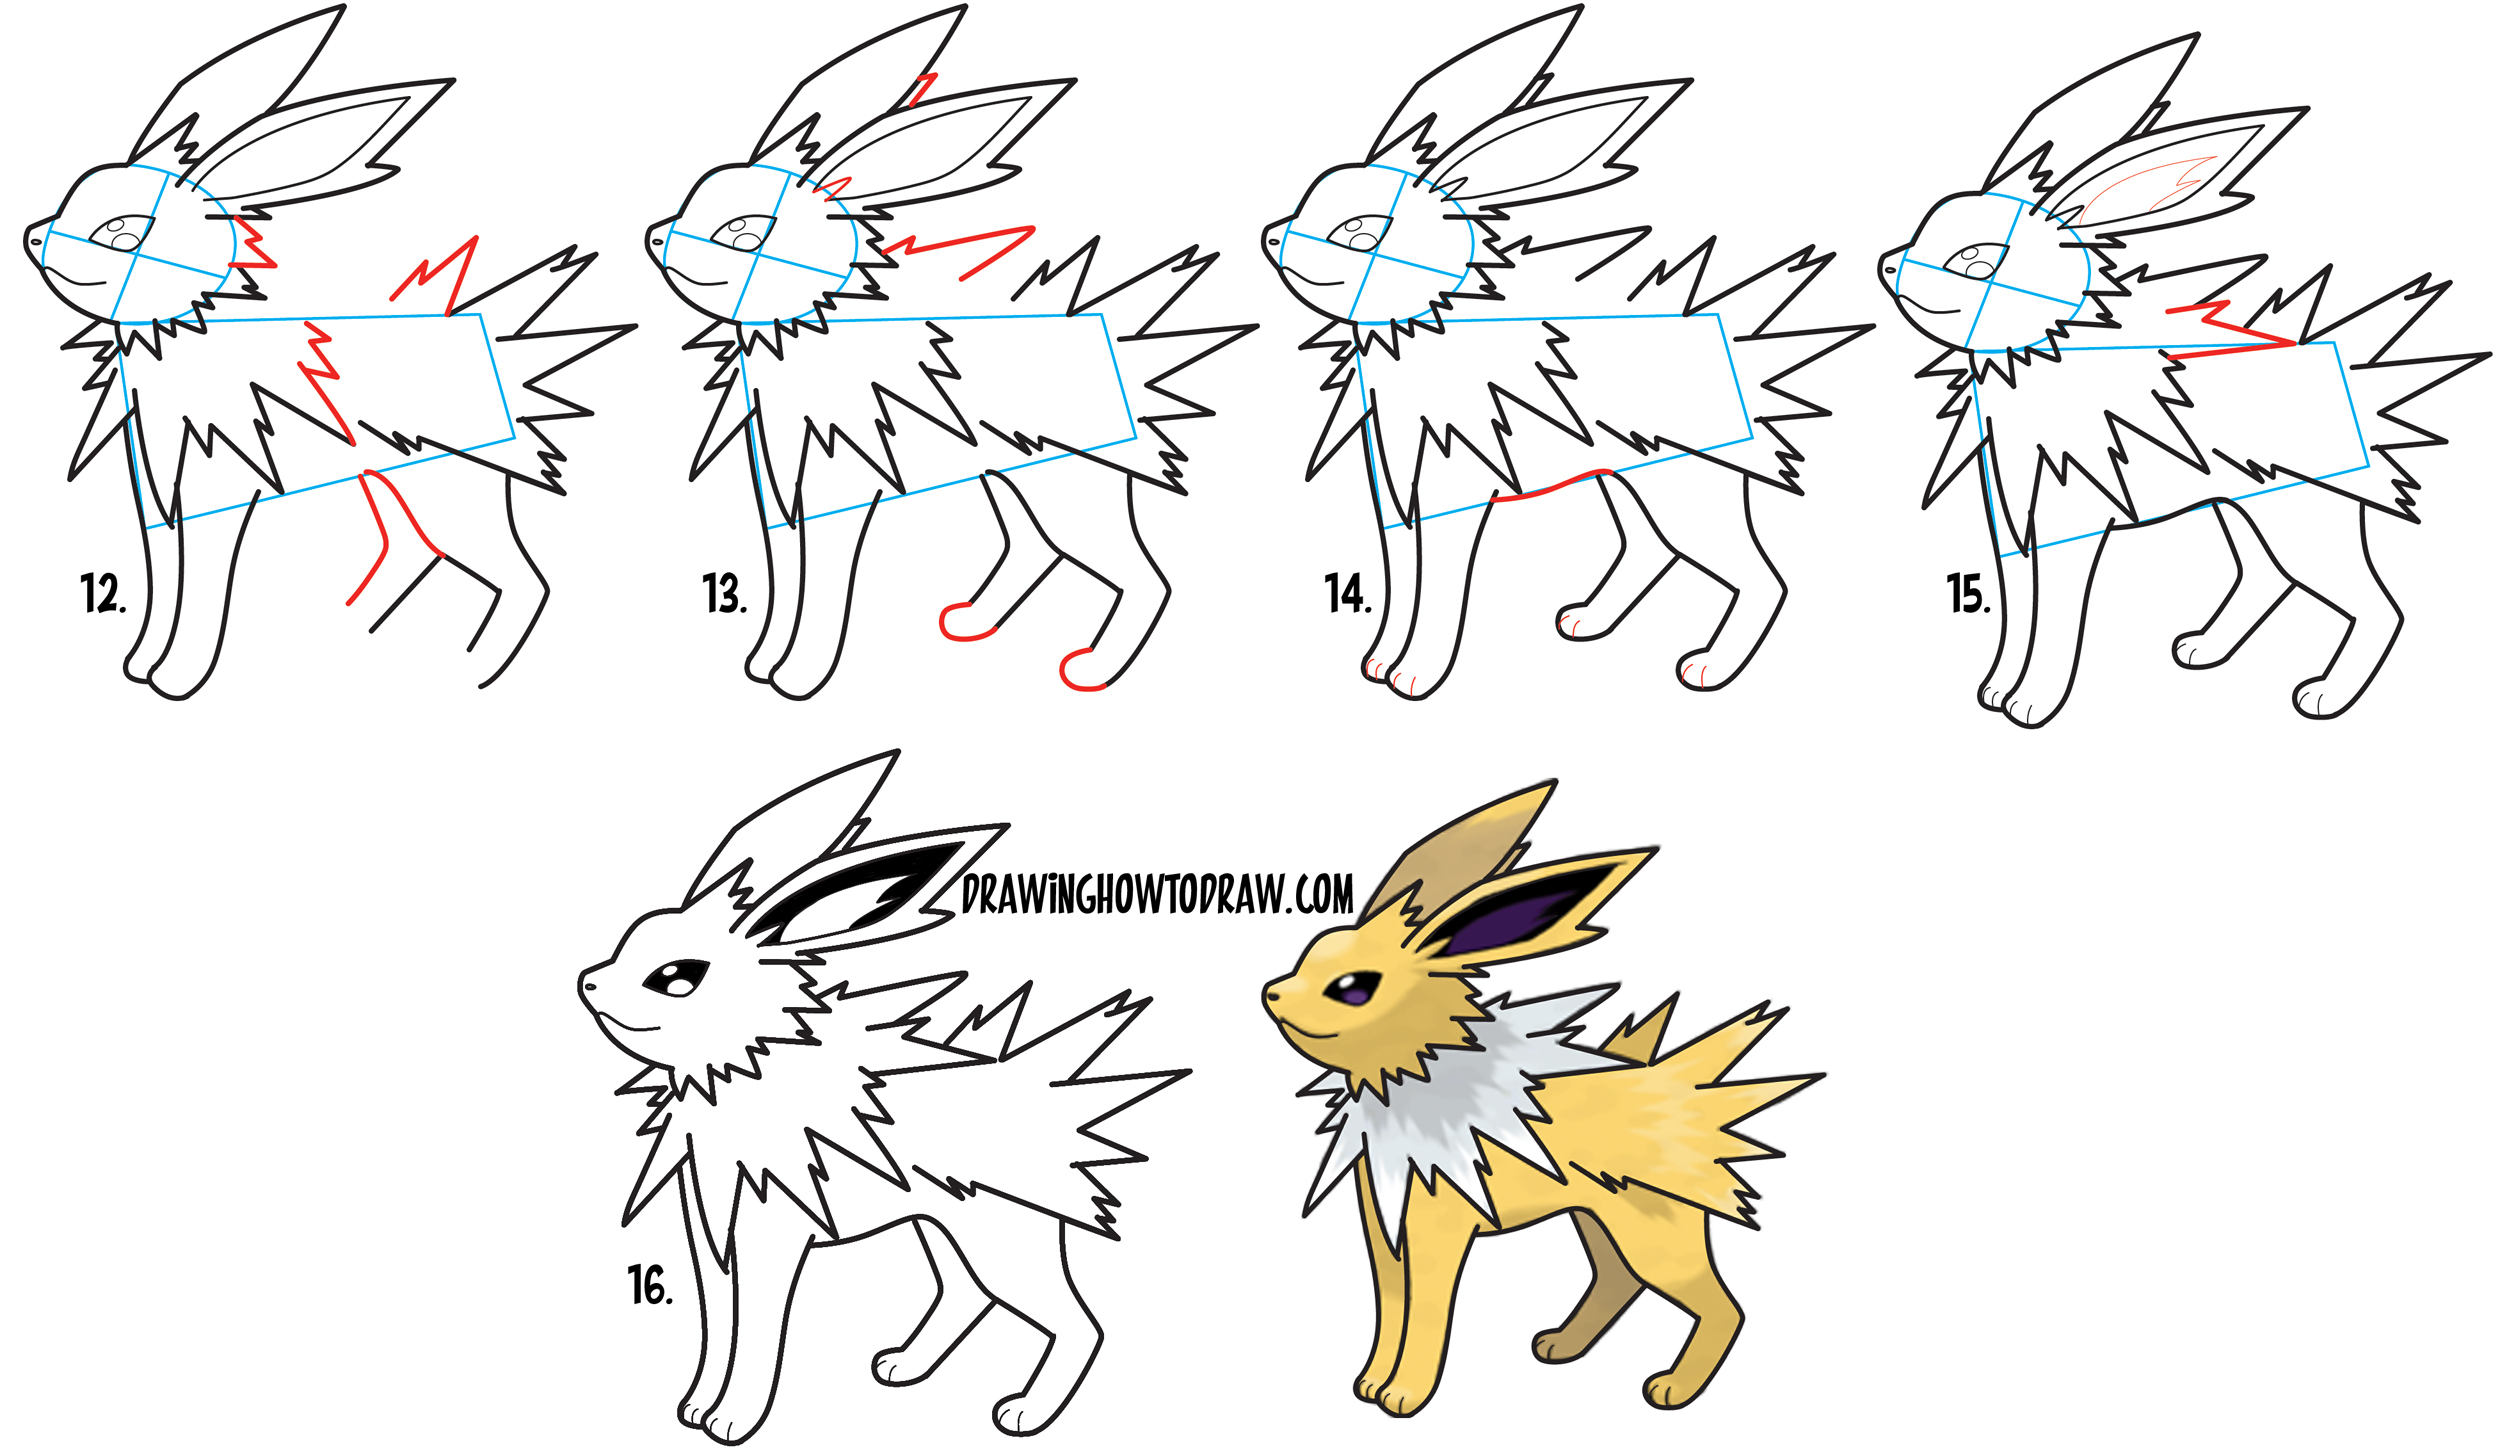 How to draw jolteon from pokemon in easy step by step for Learn drawing online step by step